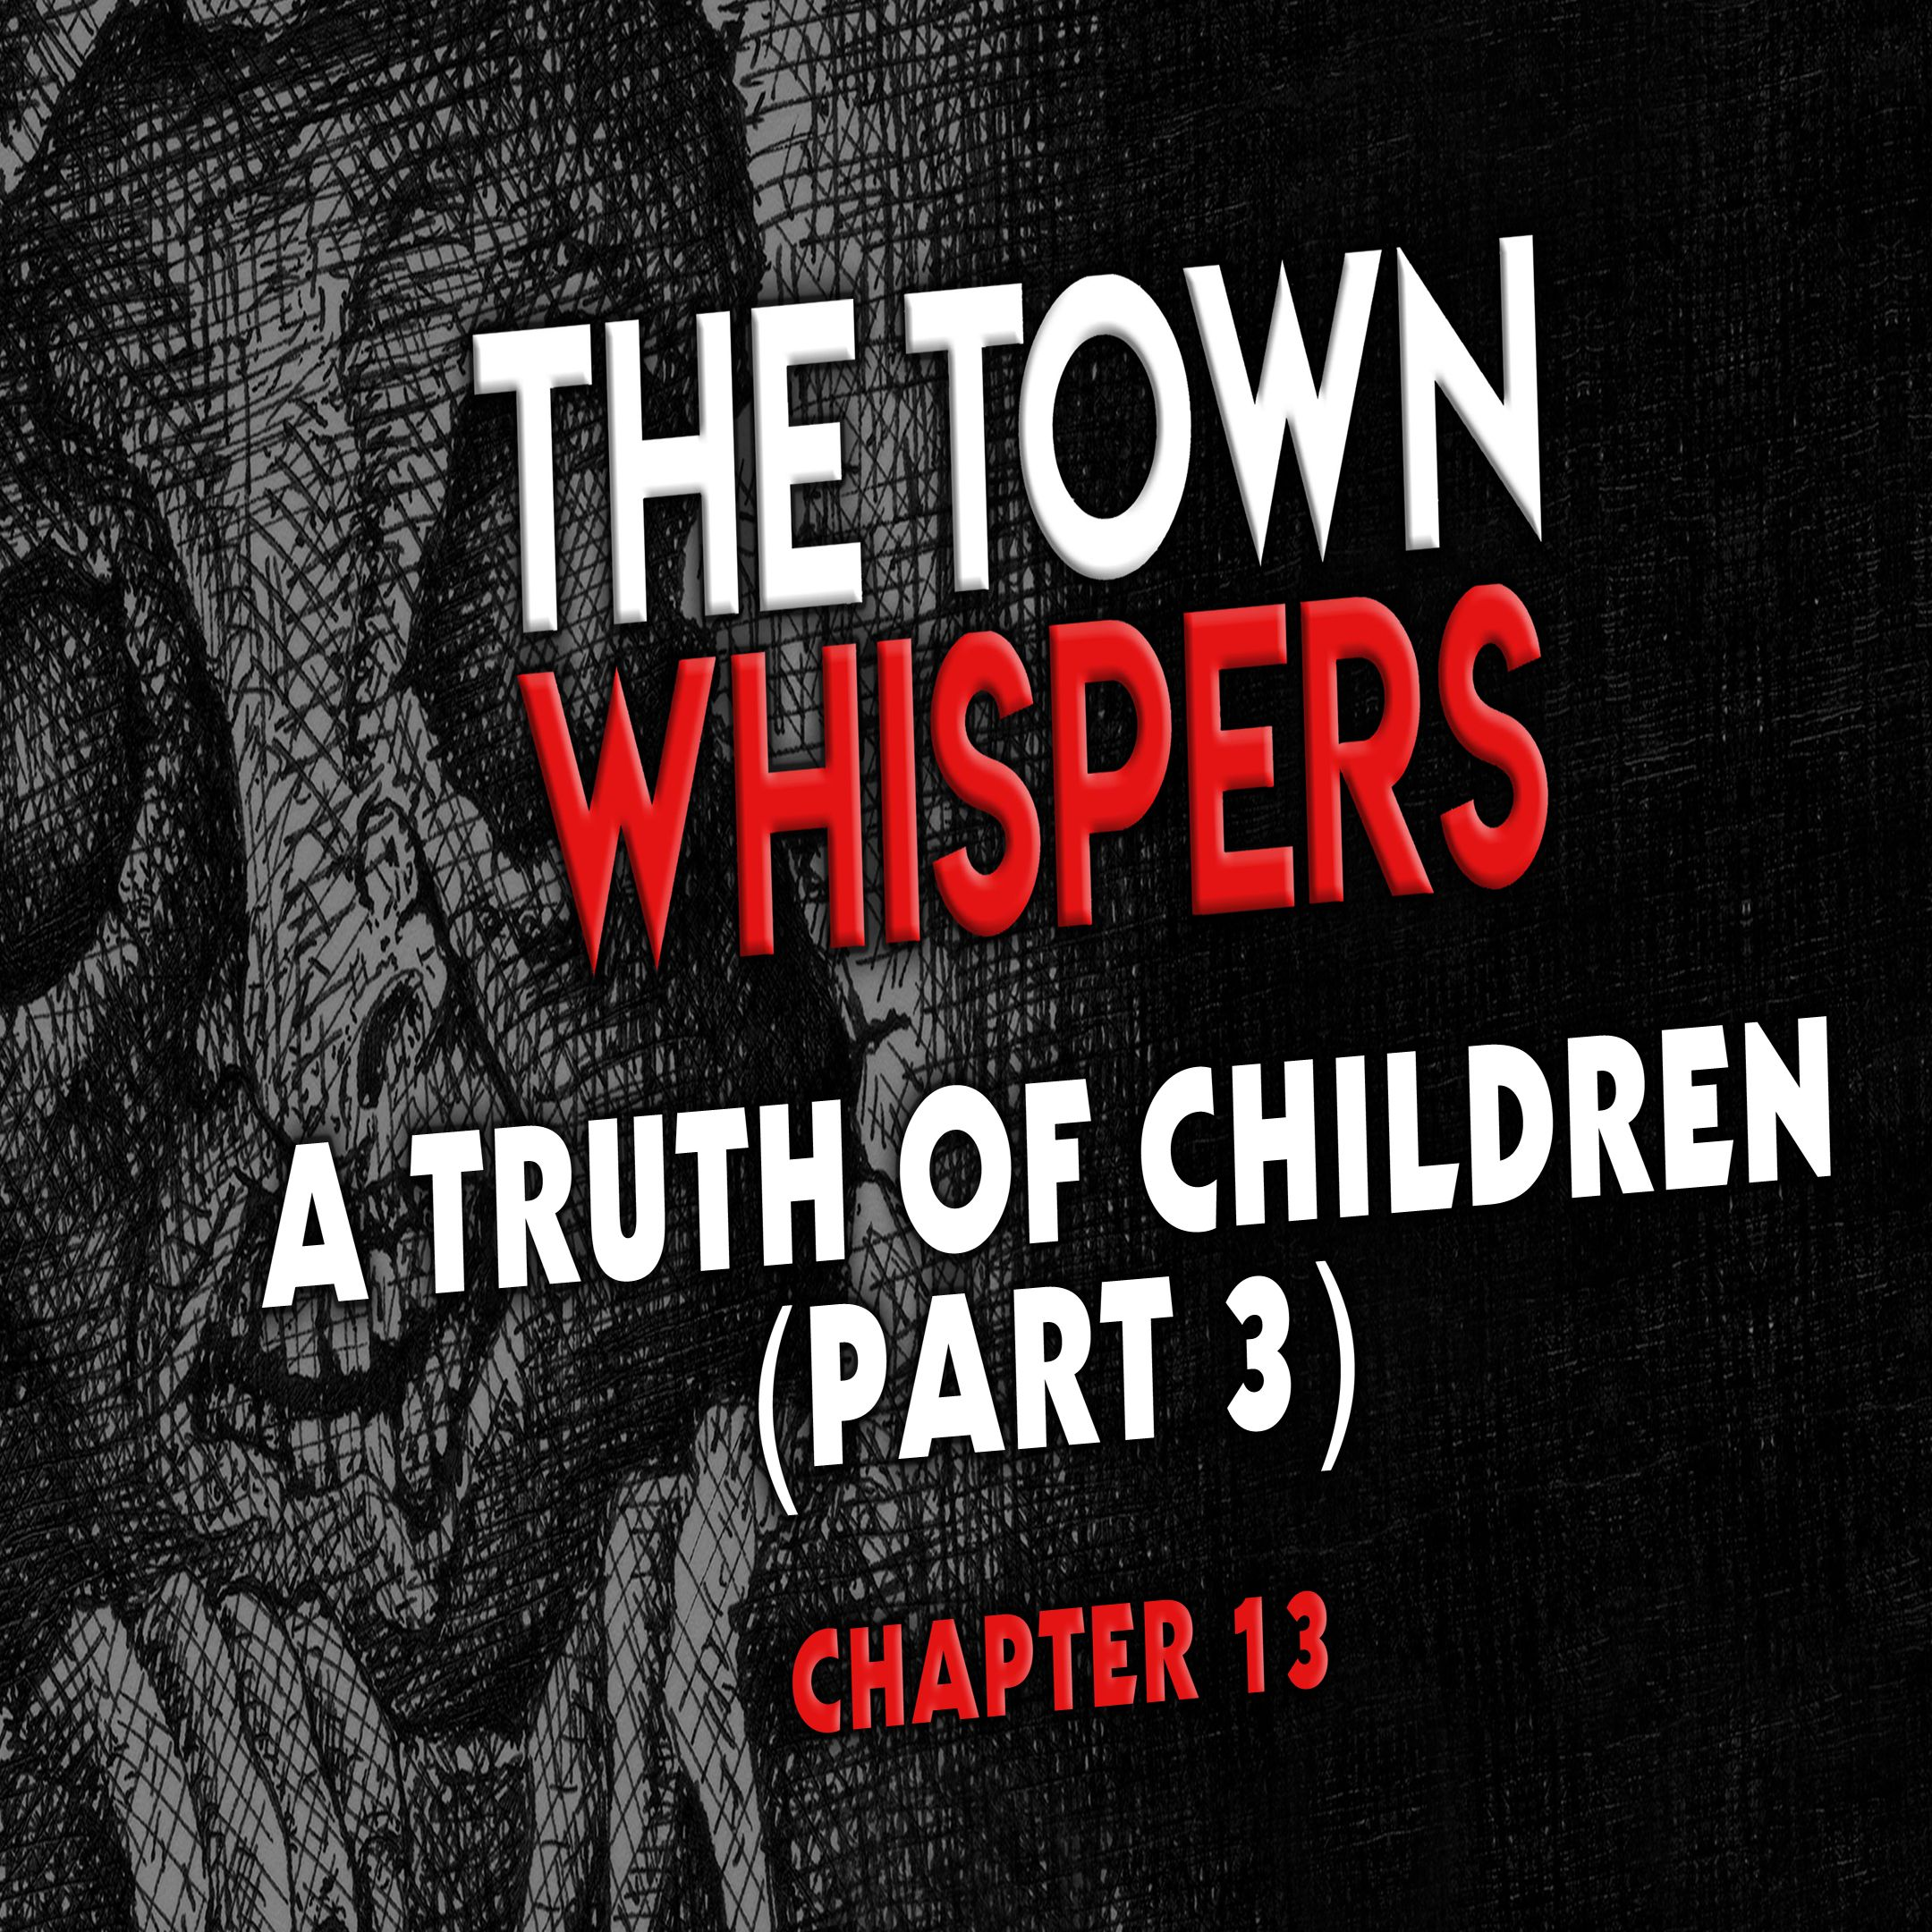 Chapter 13: A Truth of Children (Part 3)